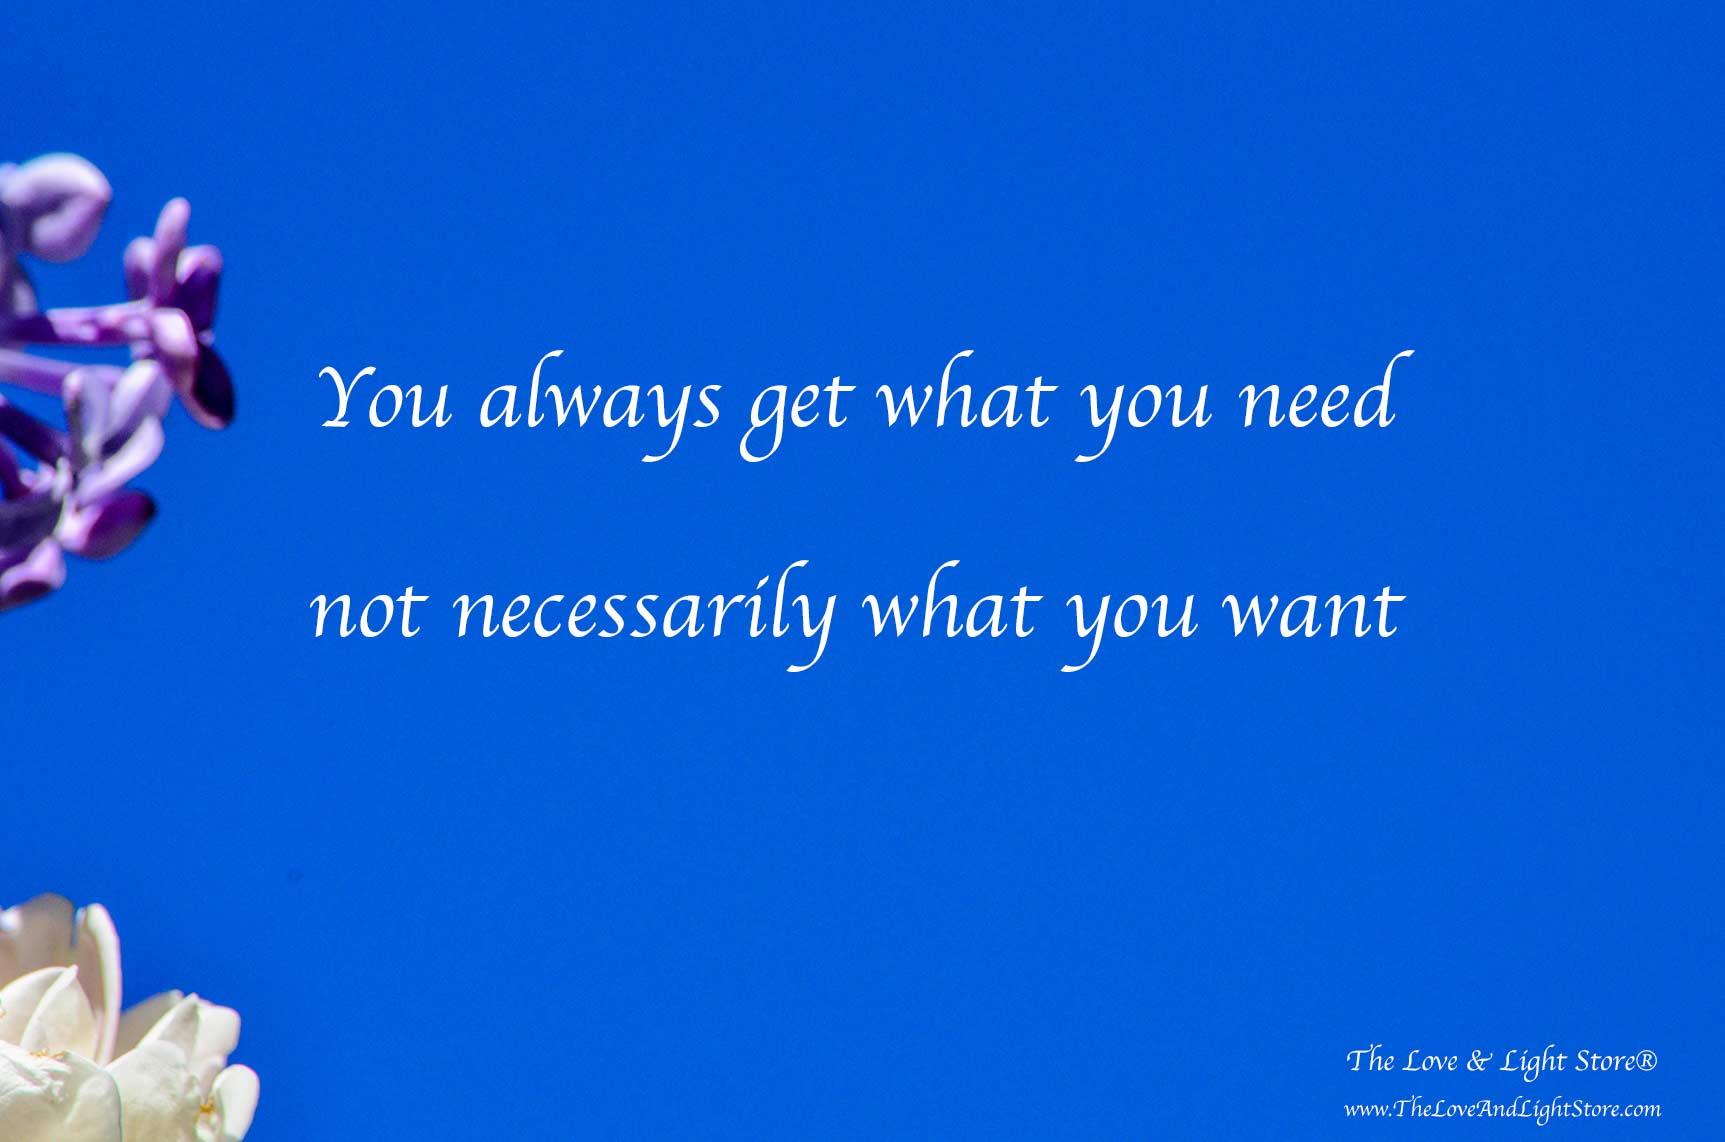 We always get what we need, not necessarily what we want